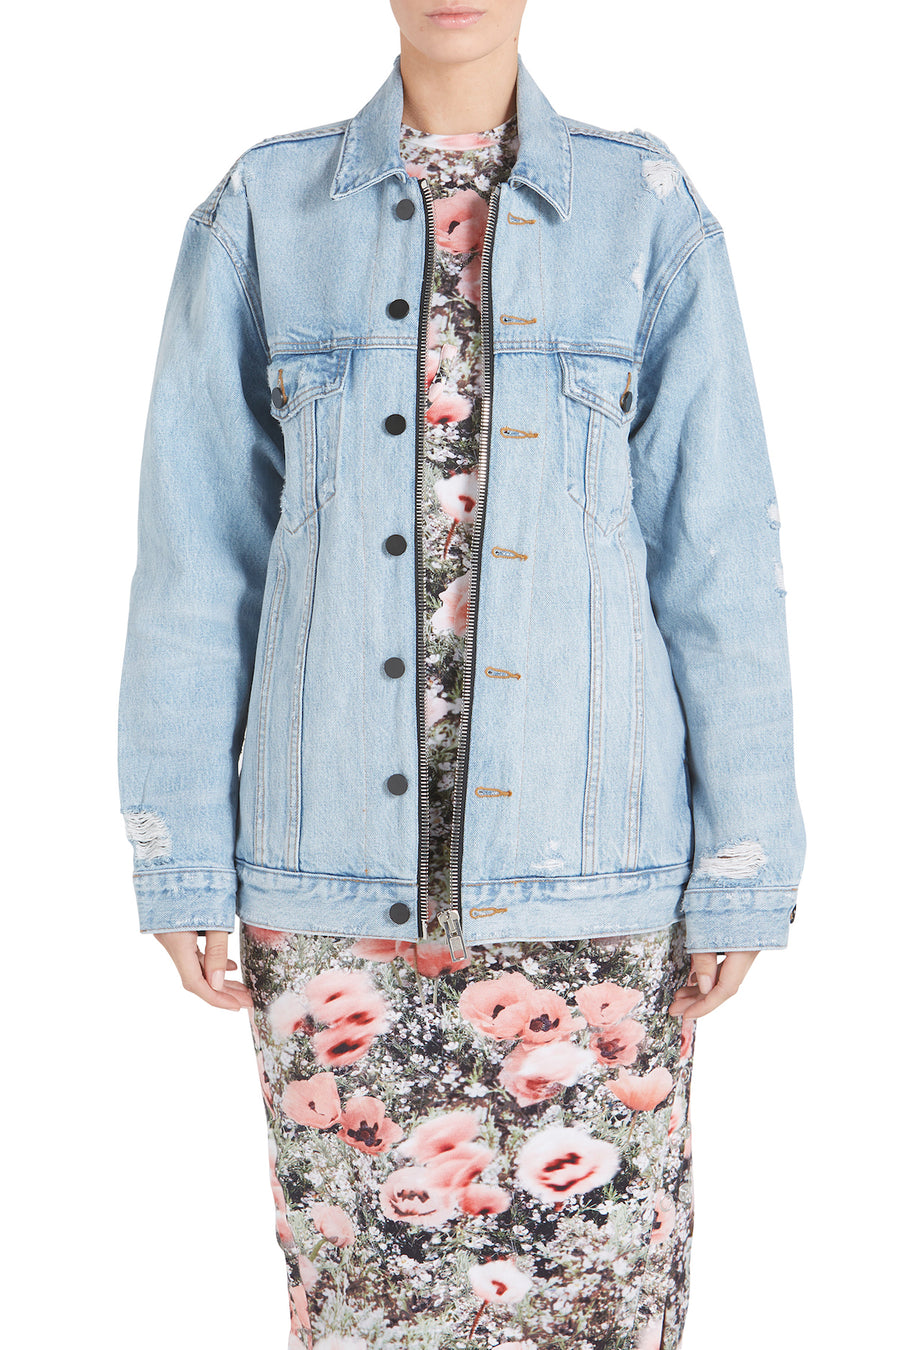 DAZE ZIP - BLEACH DENIM JACKET